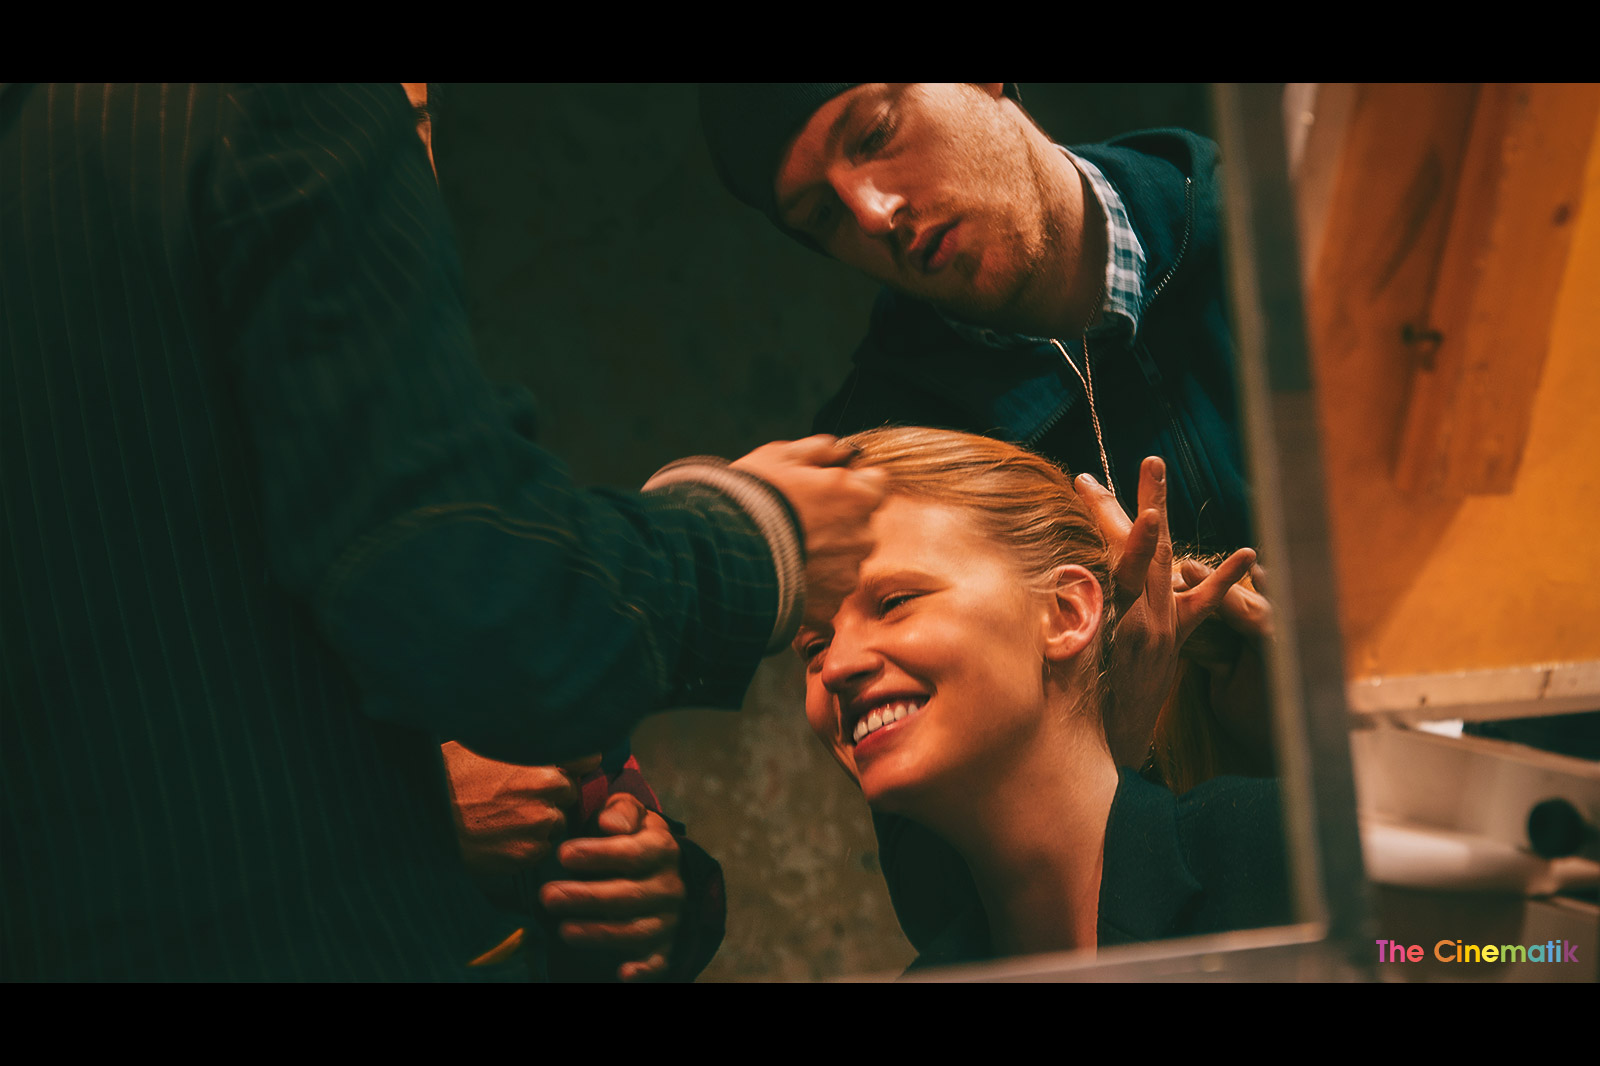 LARA-STONE-laughing-while-hair-dressed-at-Stella-McCartney-show-beautiful-cinematic-photograph-by-Kamal-Lahmadi.jpg